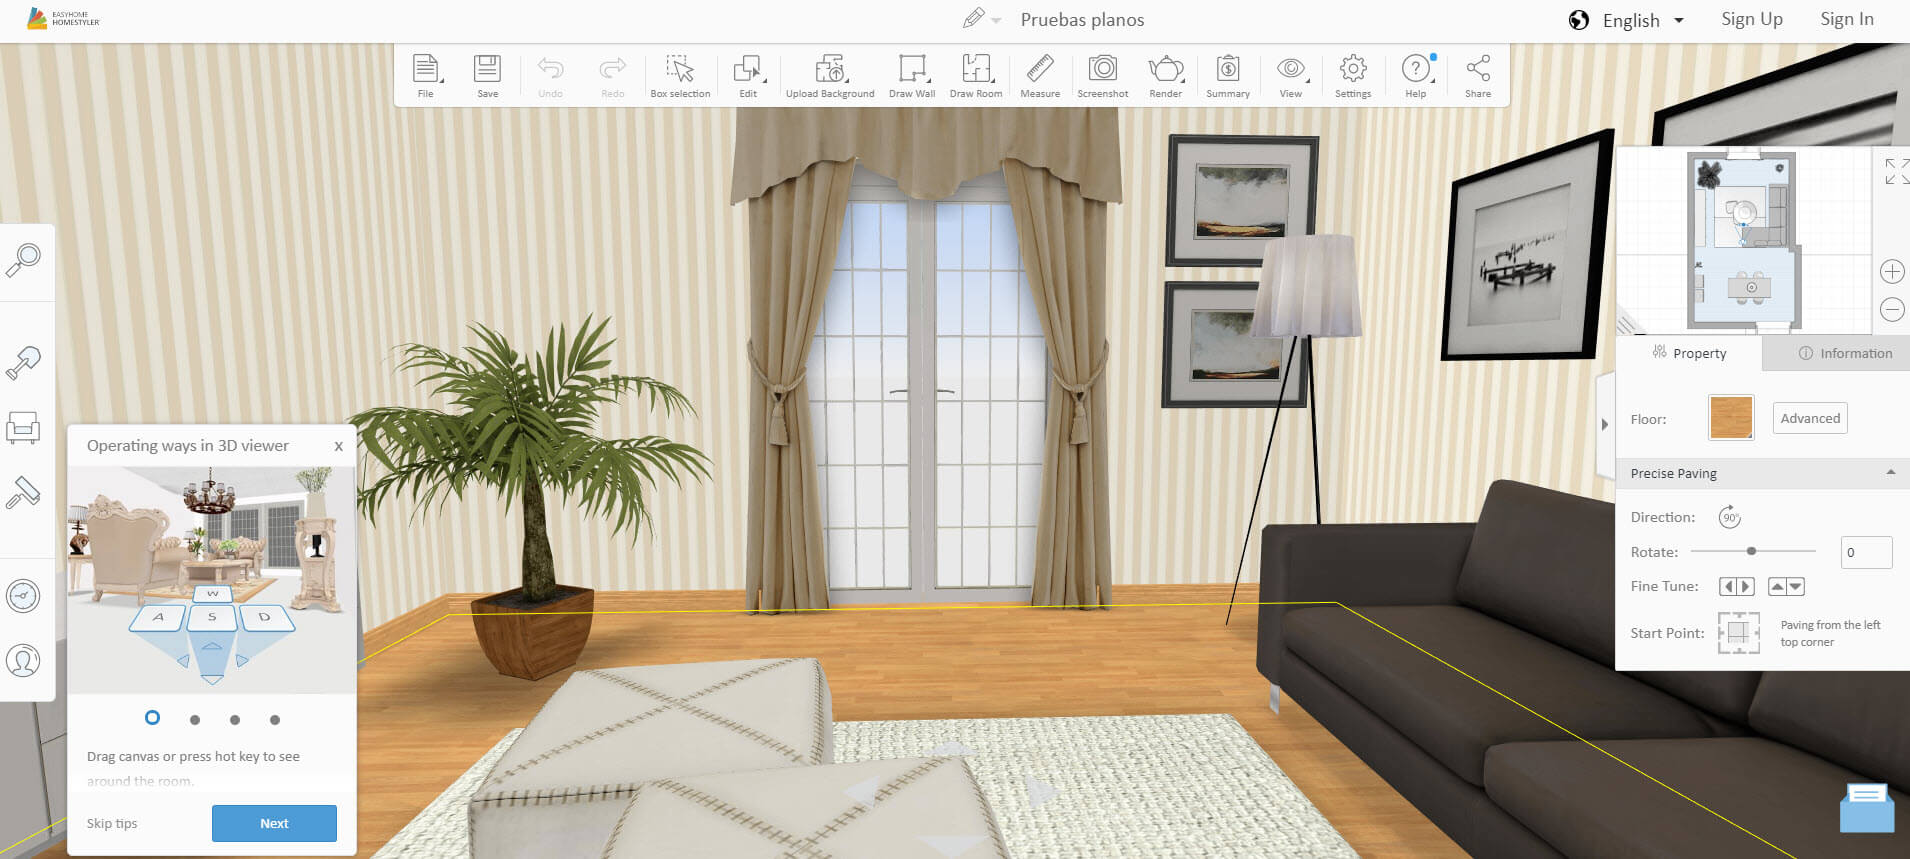 Best Home Design App Top 10 Software For Designing The Interior Of Your Dream